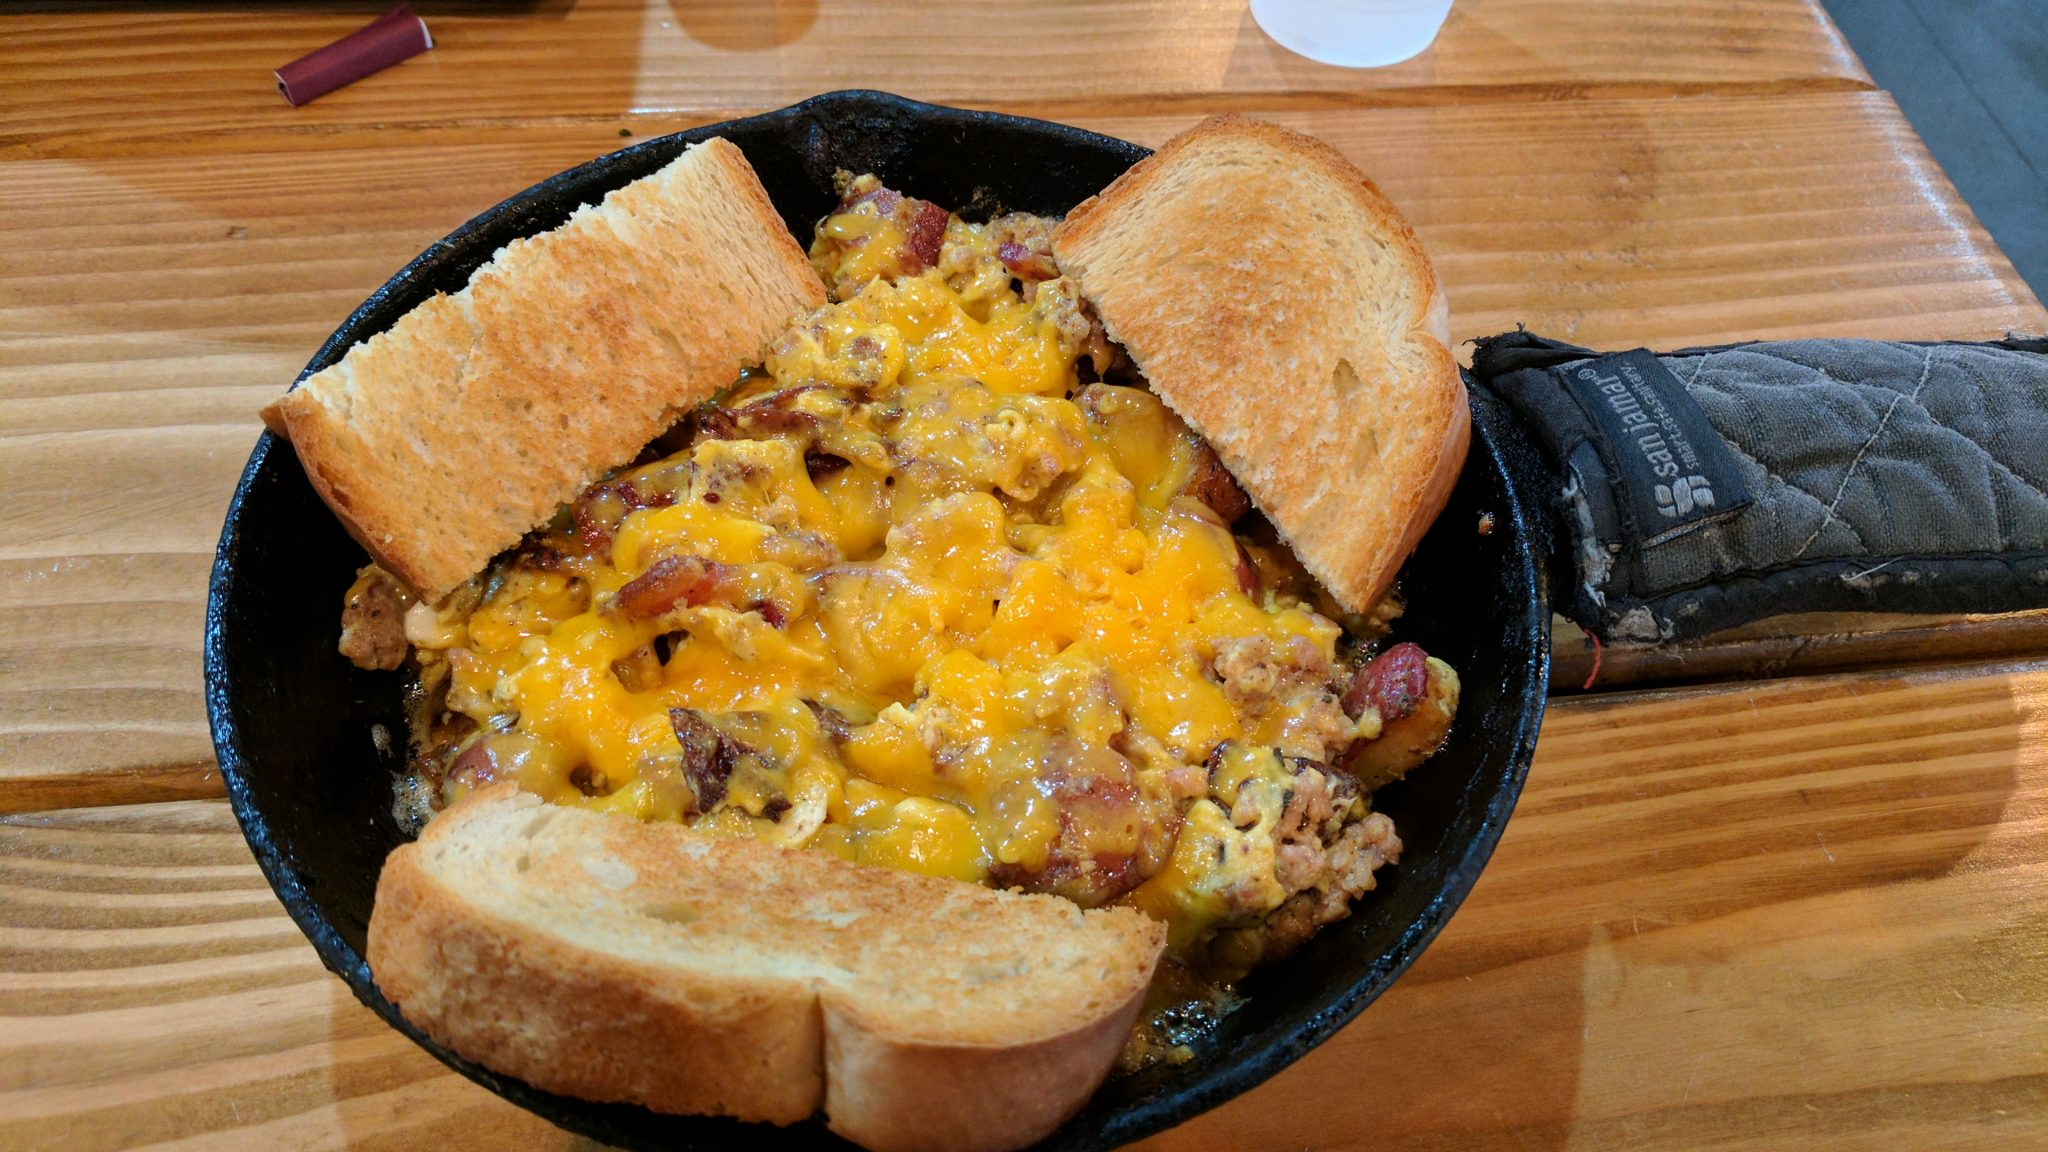 Meat Skillet With Scrambled Eggs And Sour Dough Toast